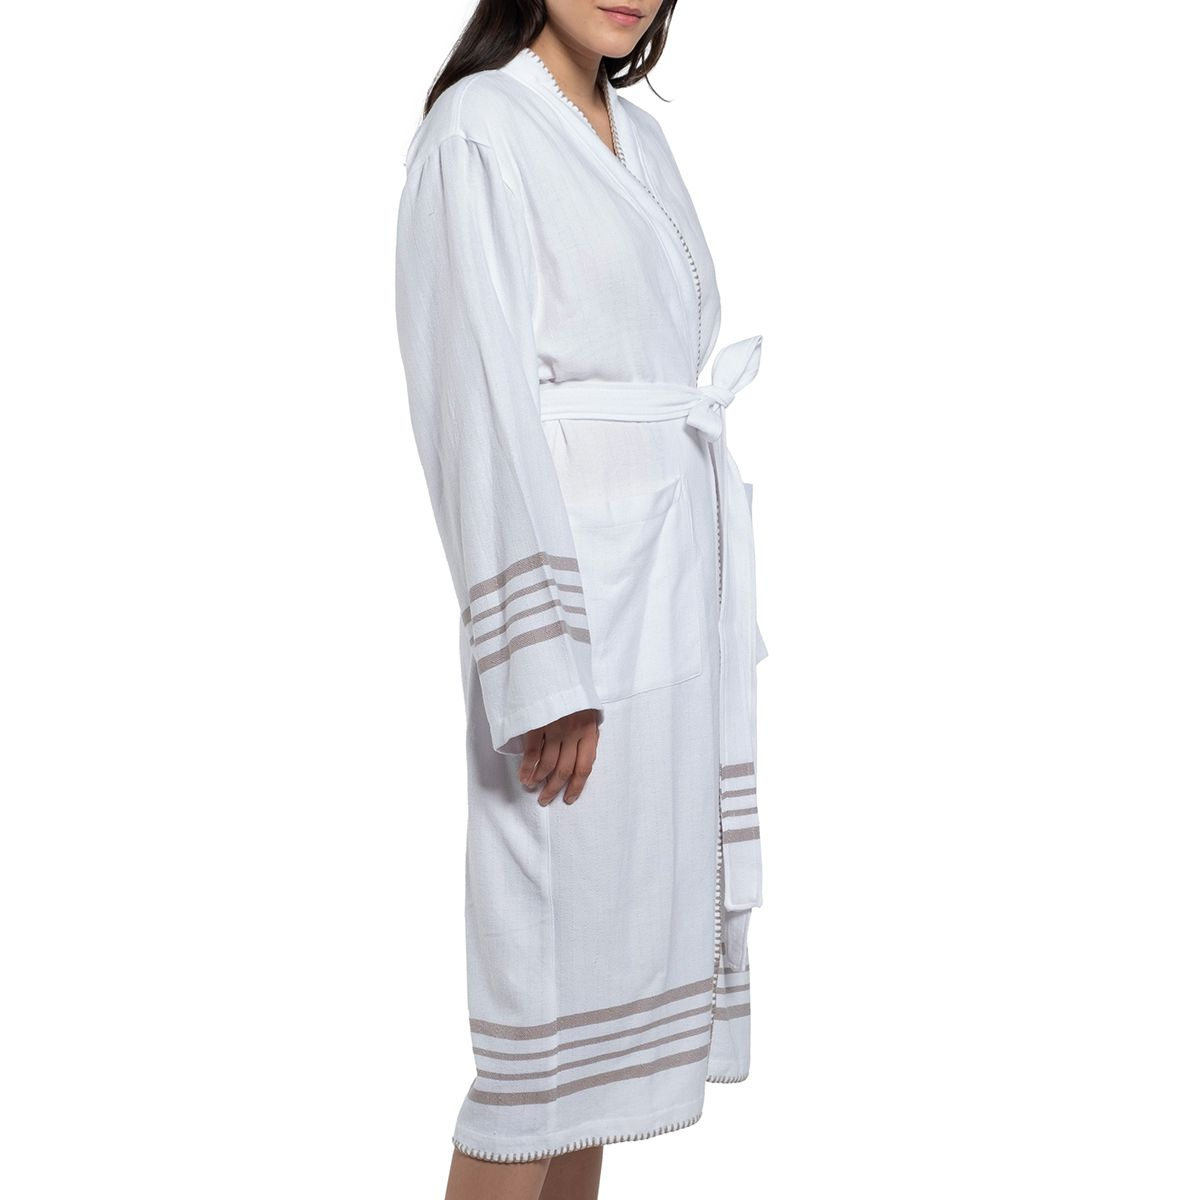 Bathrobe White Sultan - Taupe Stripes